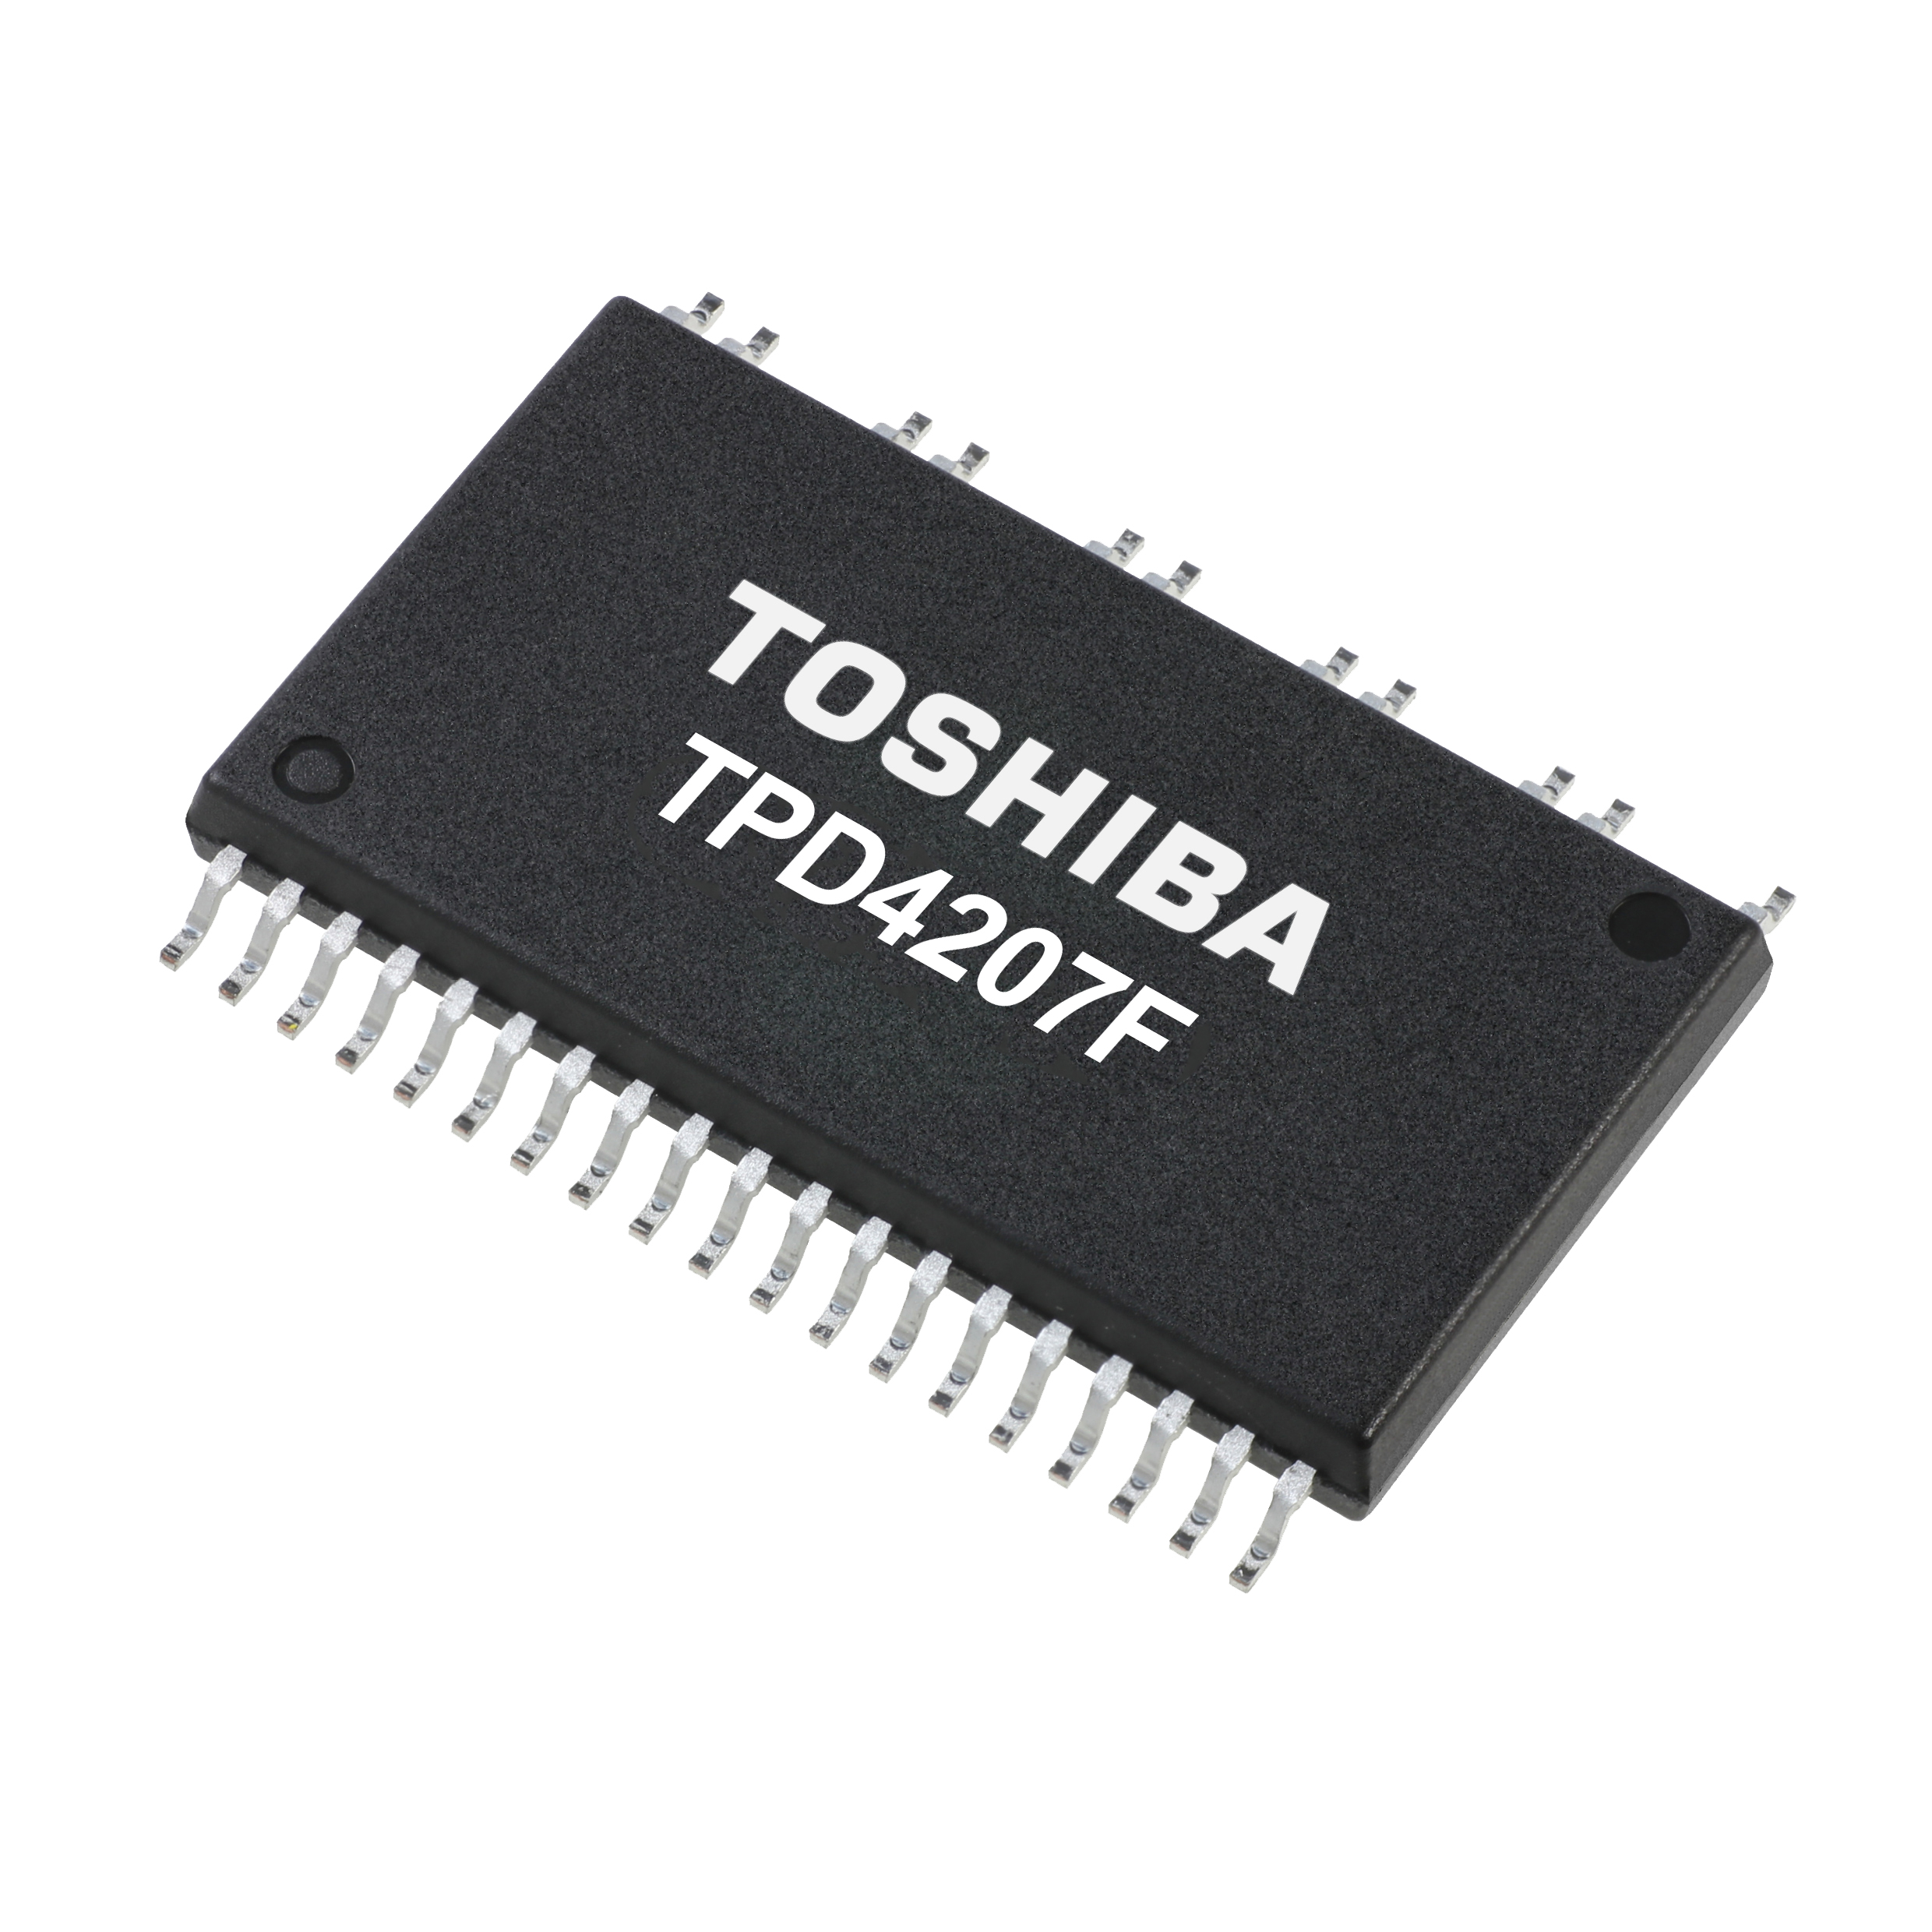 Toshiba increases current capability of their high-voltage intelligent power devices